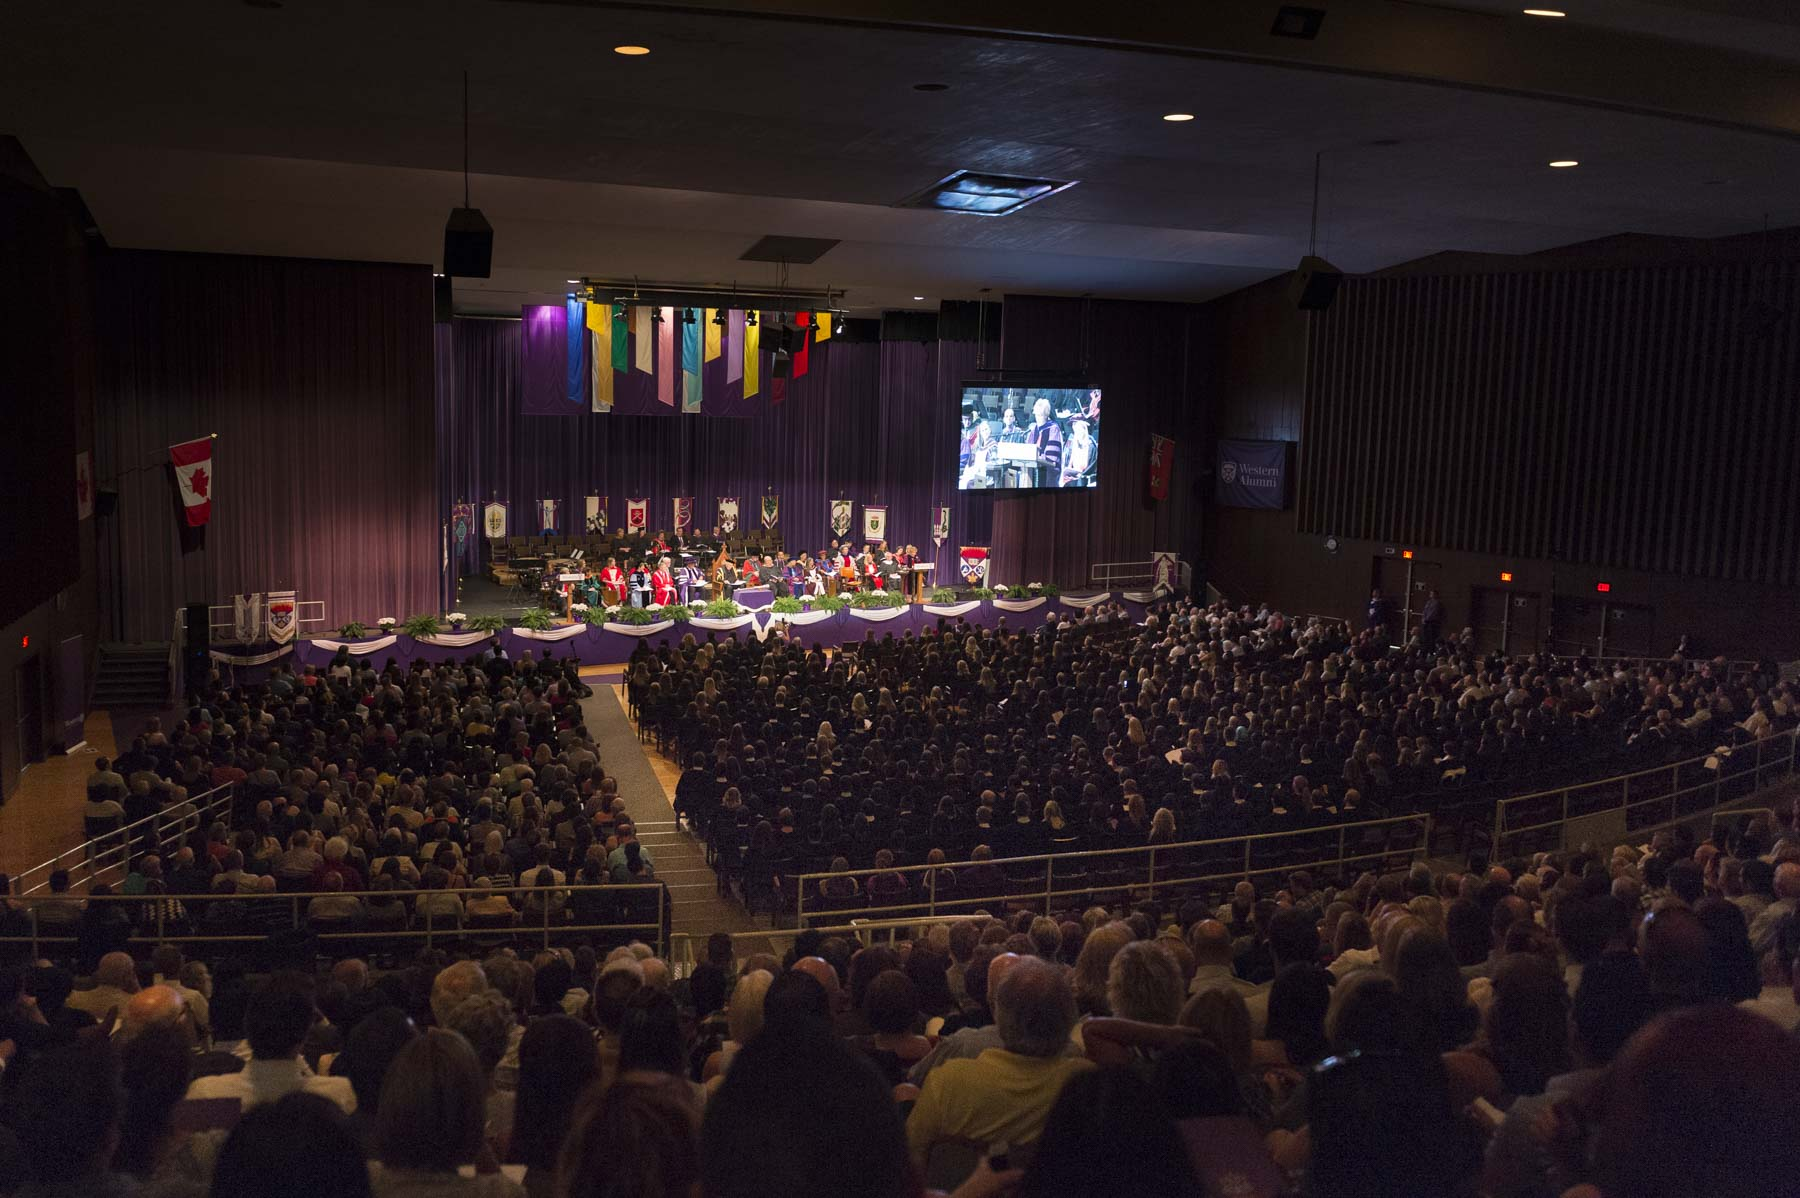 This Western University convocation saw students graduating from the School of Graduate & Postdoctoral Studies, Faculty of Health Sciences (Nursing) and the Faculty of Law.